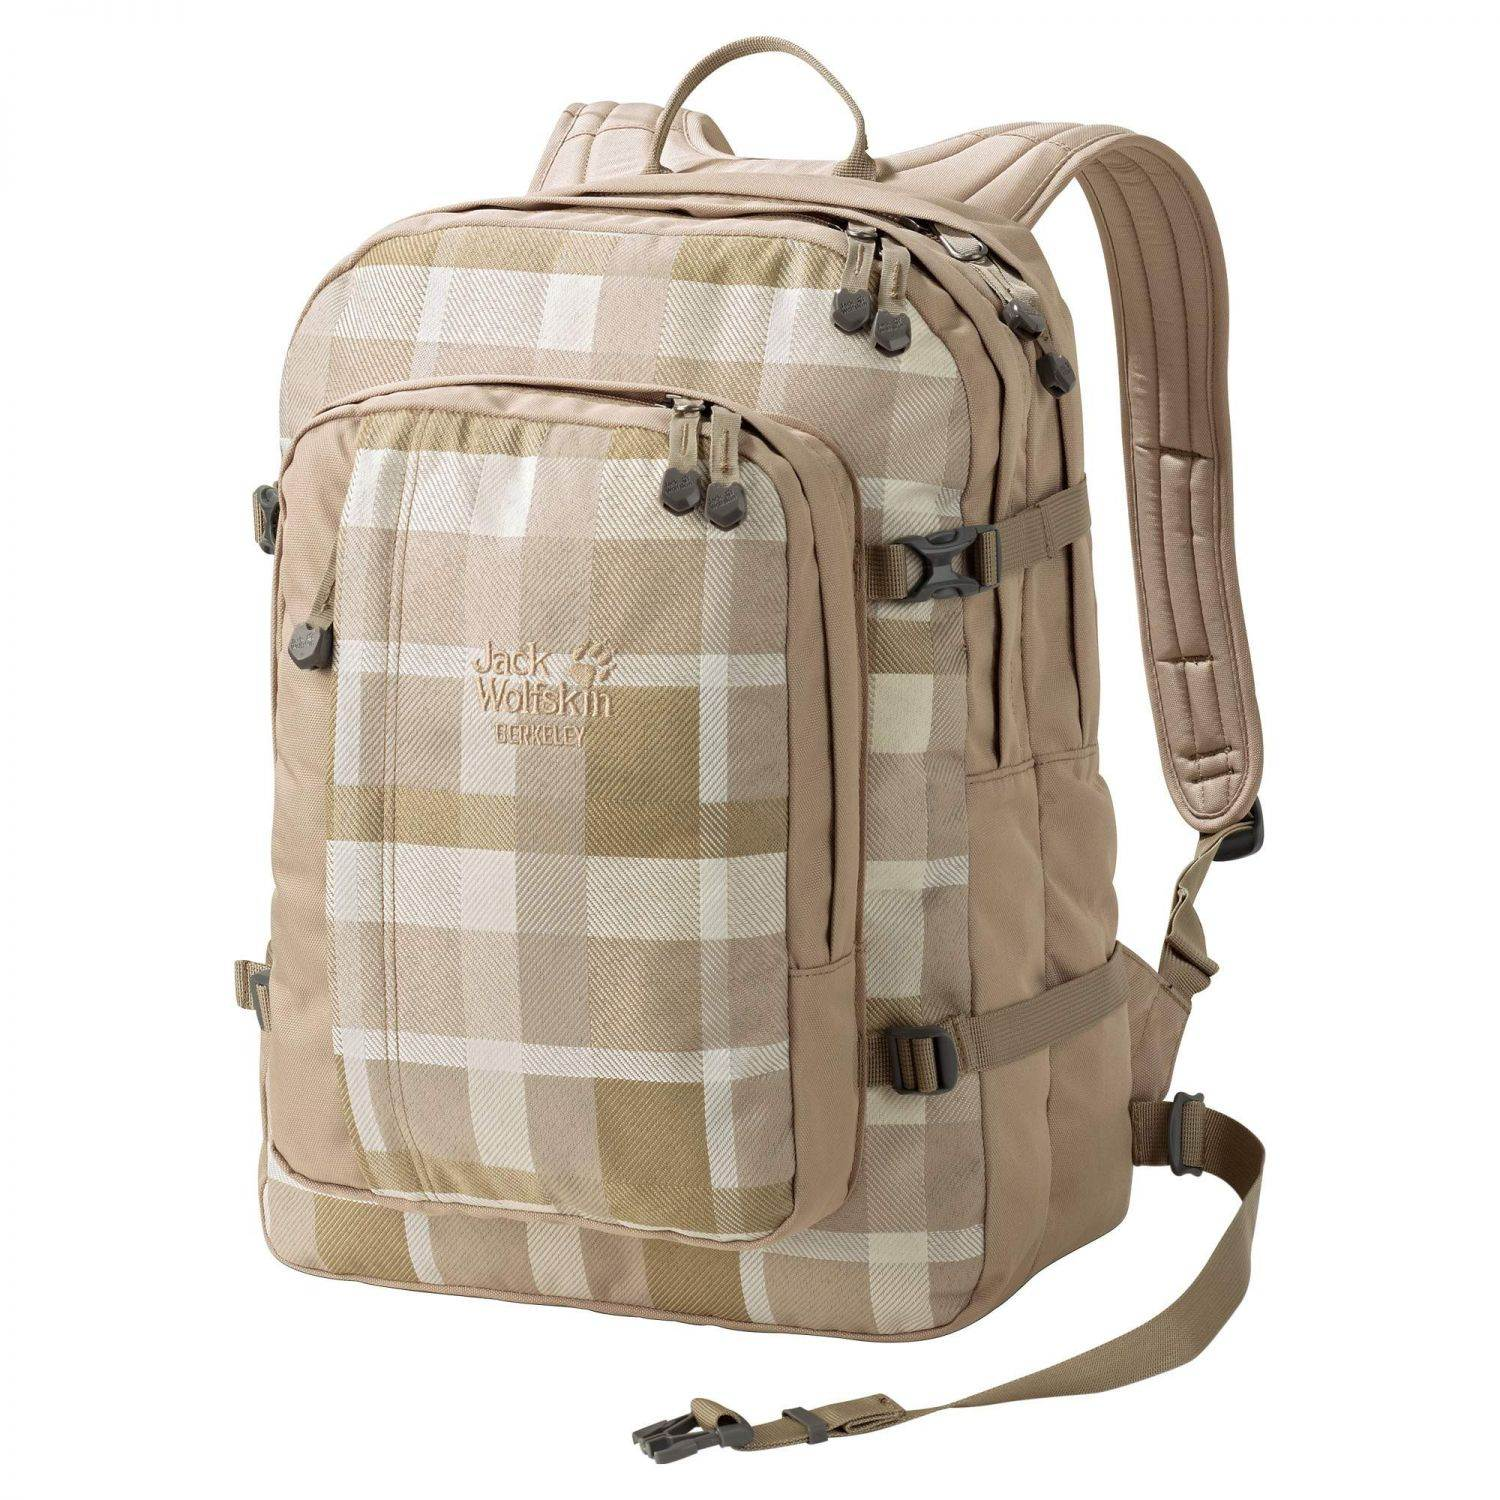 Jack Wolfskin Berkeley Daypack (Farbe: 7951 sand woven check)